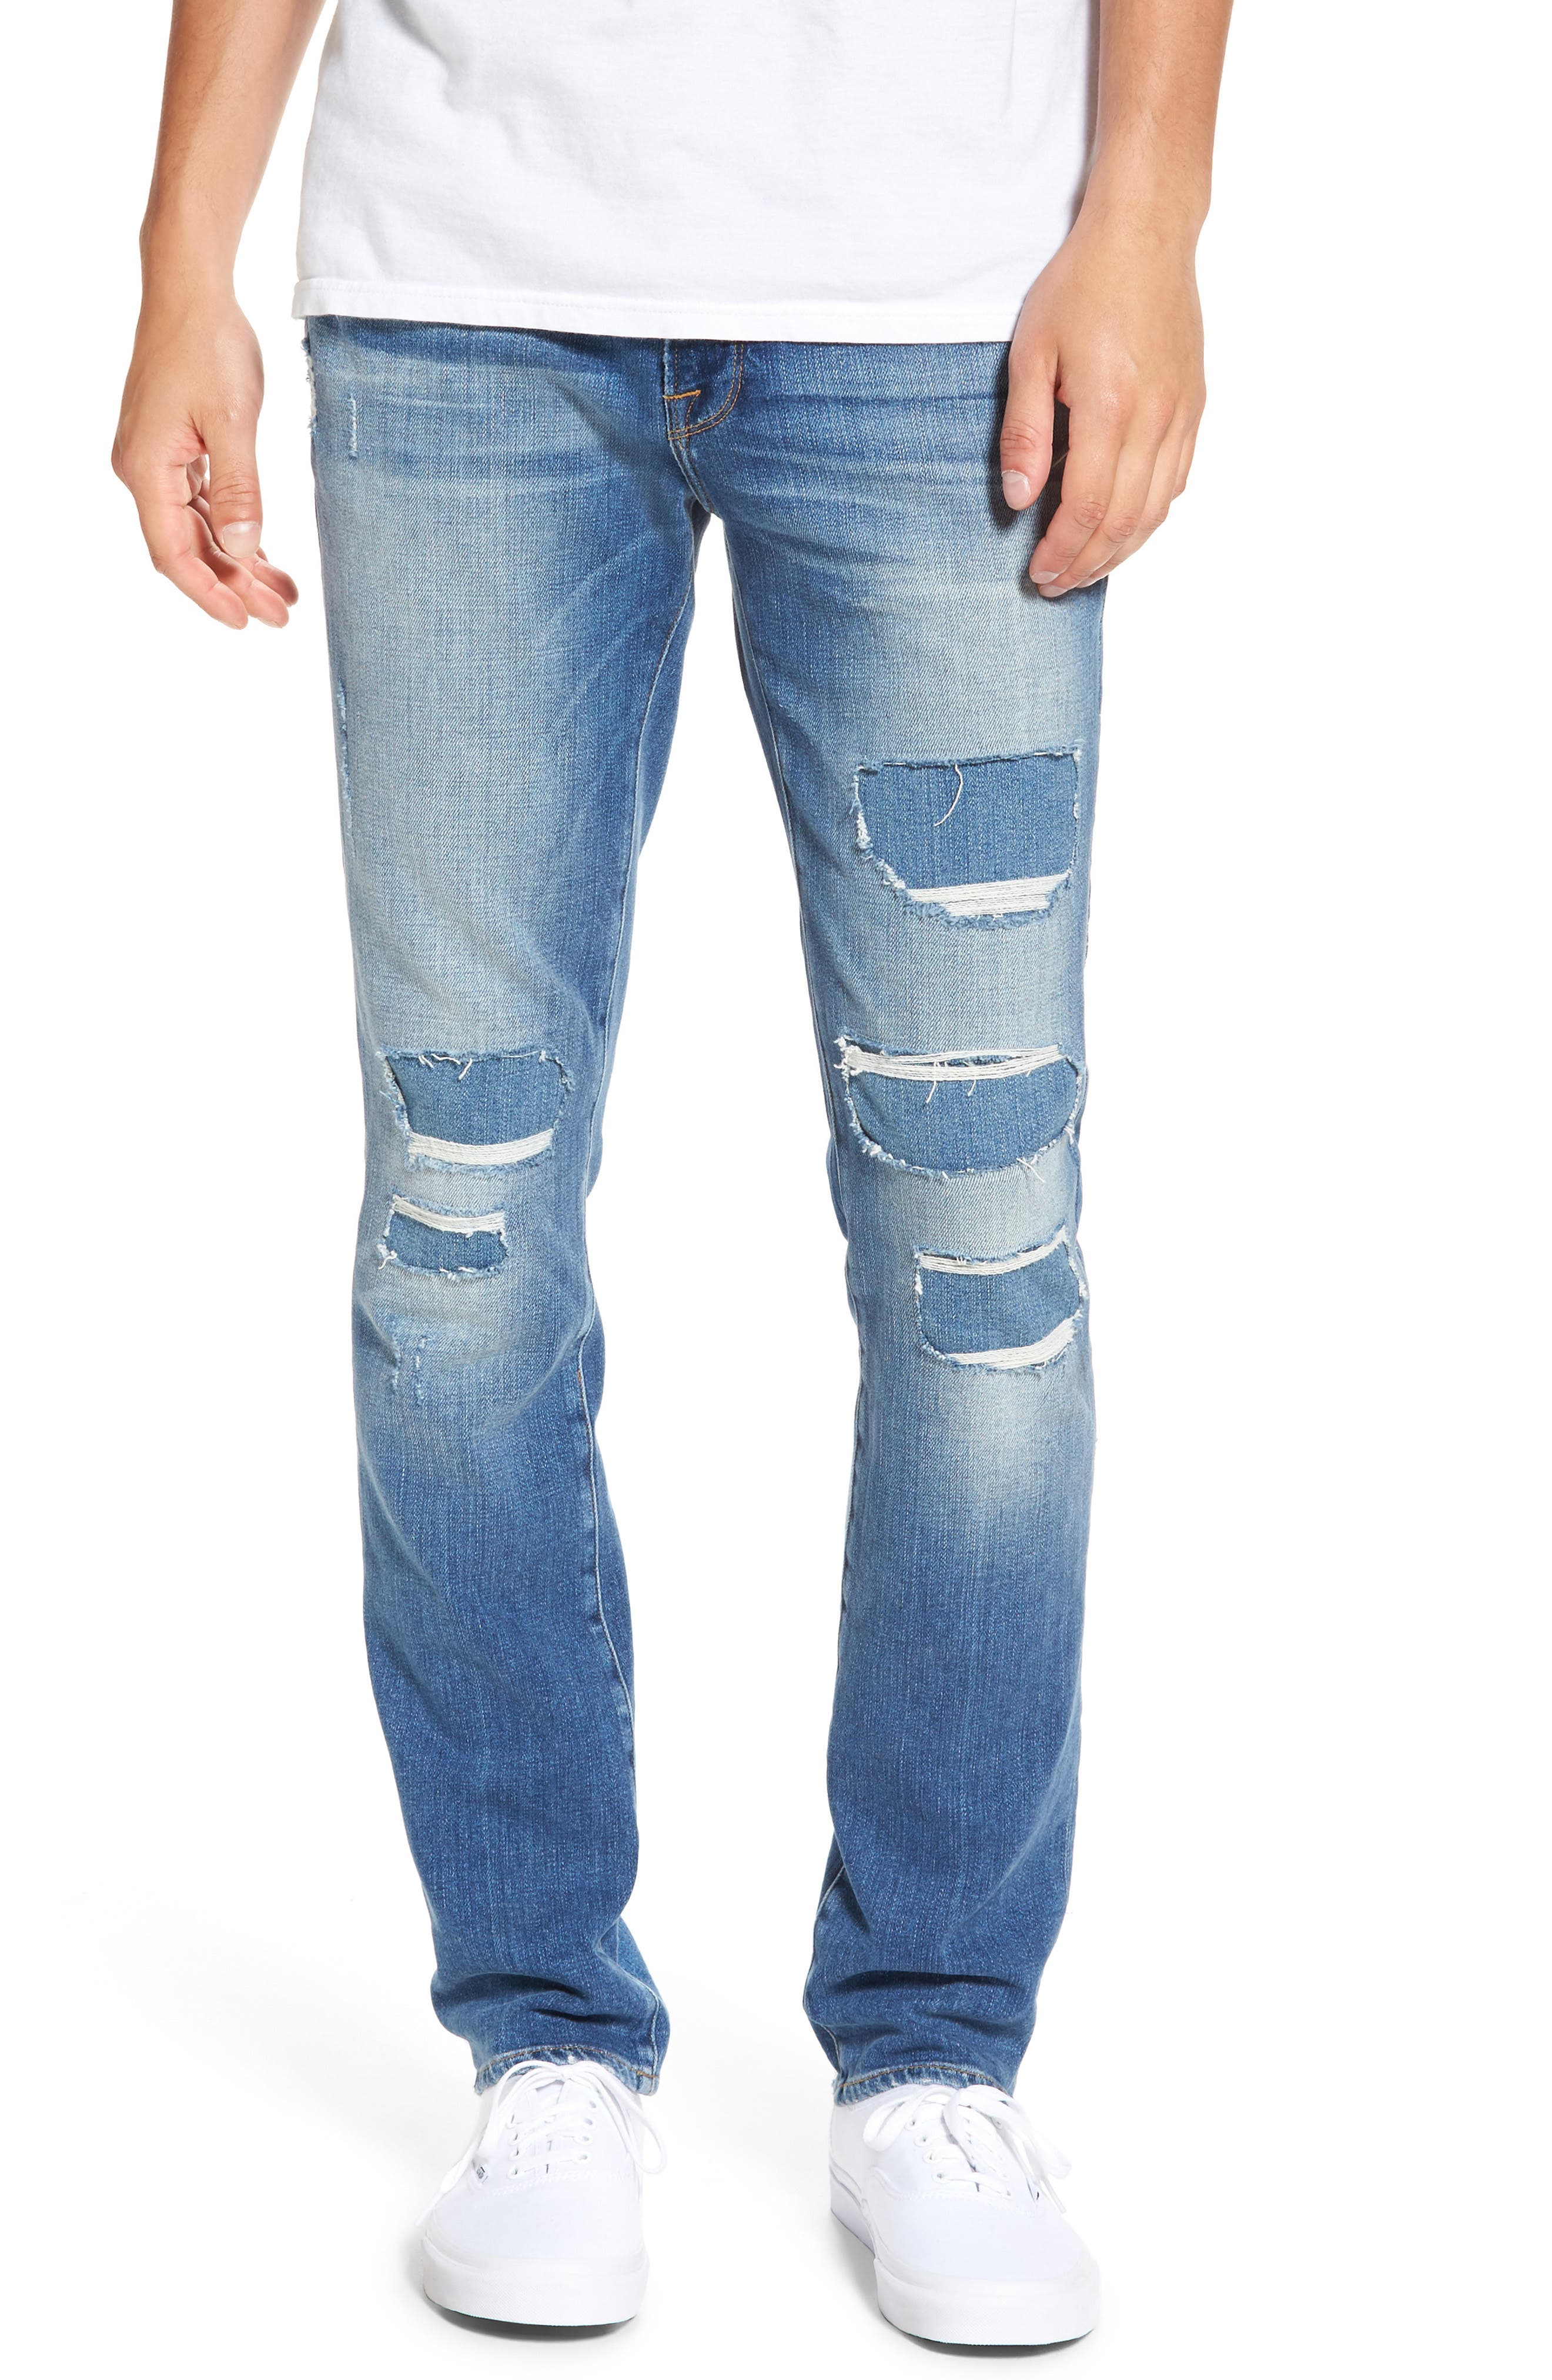 L'Homme Skinny Jeans,                         Main,                         color, Frazier